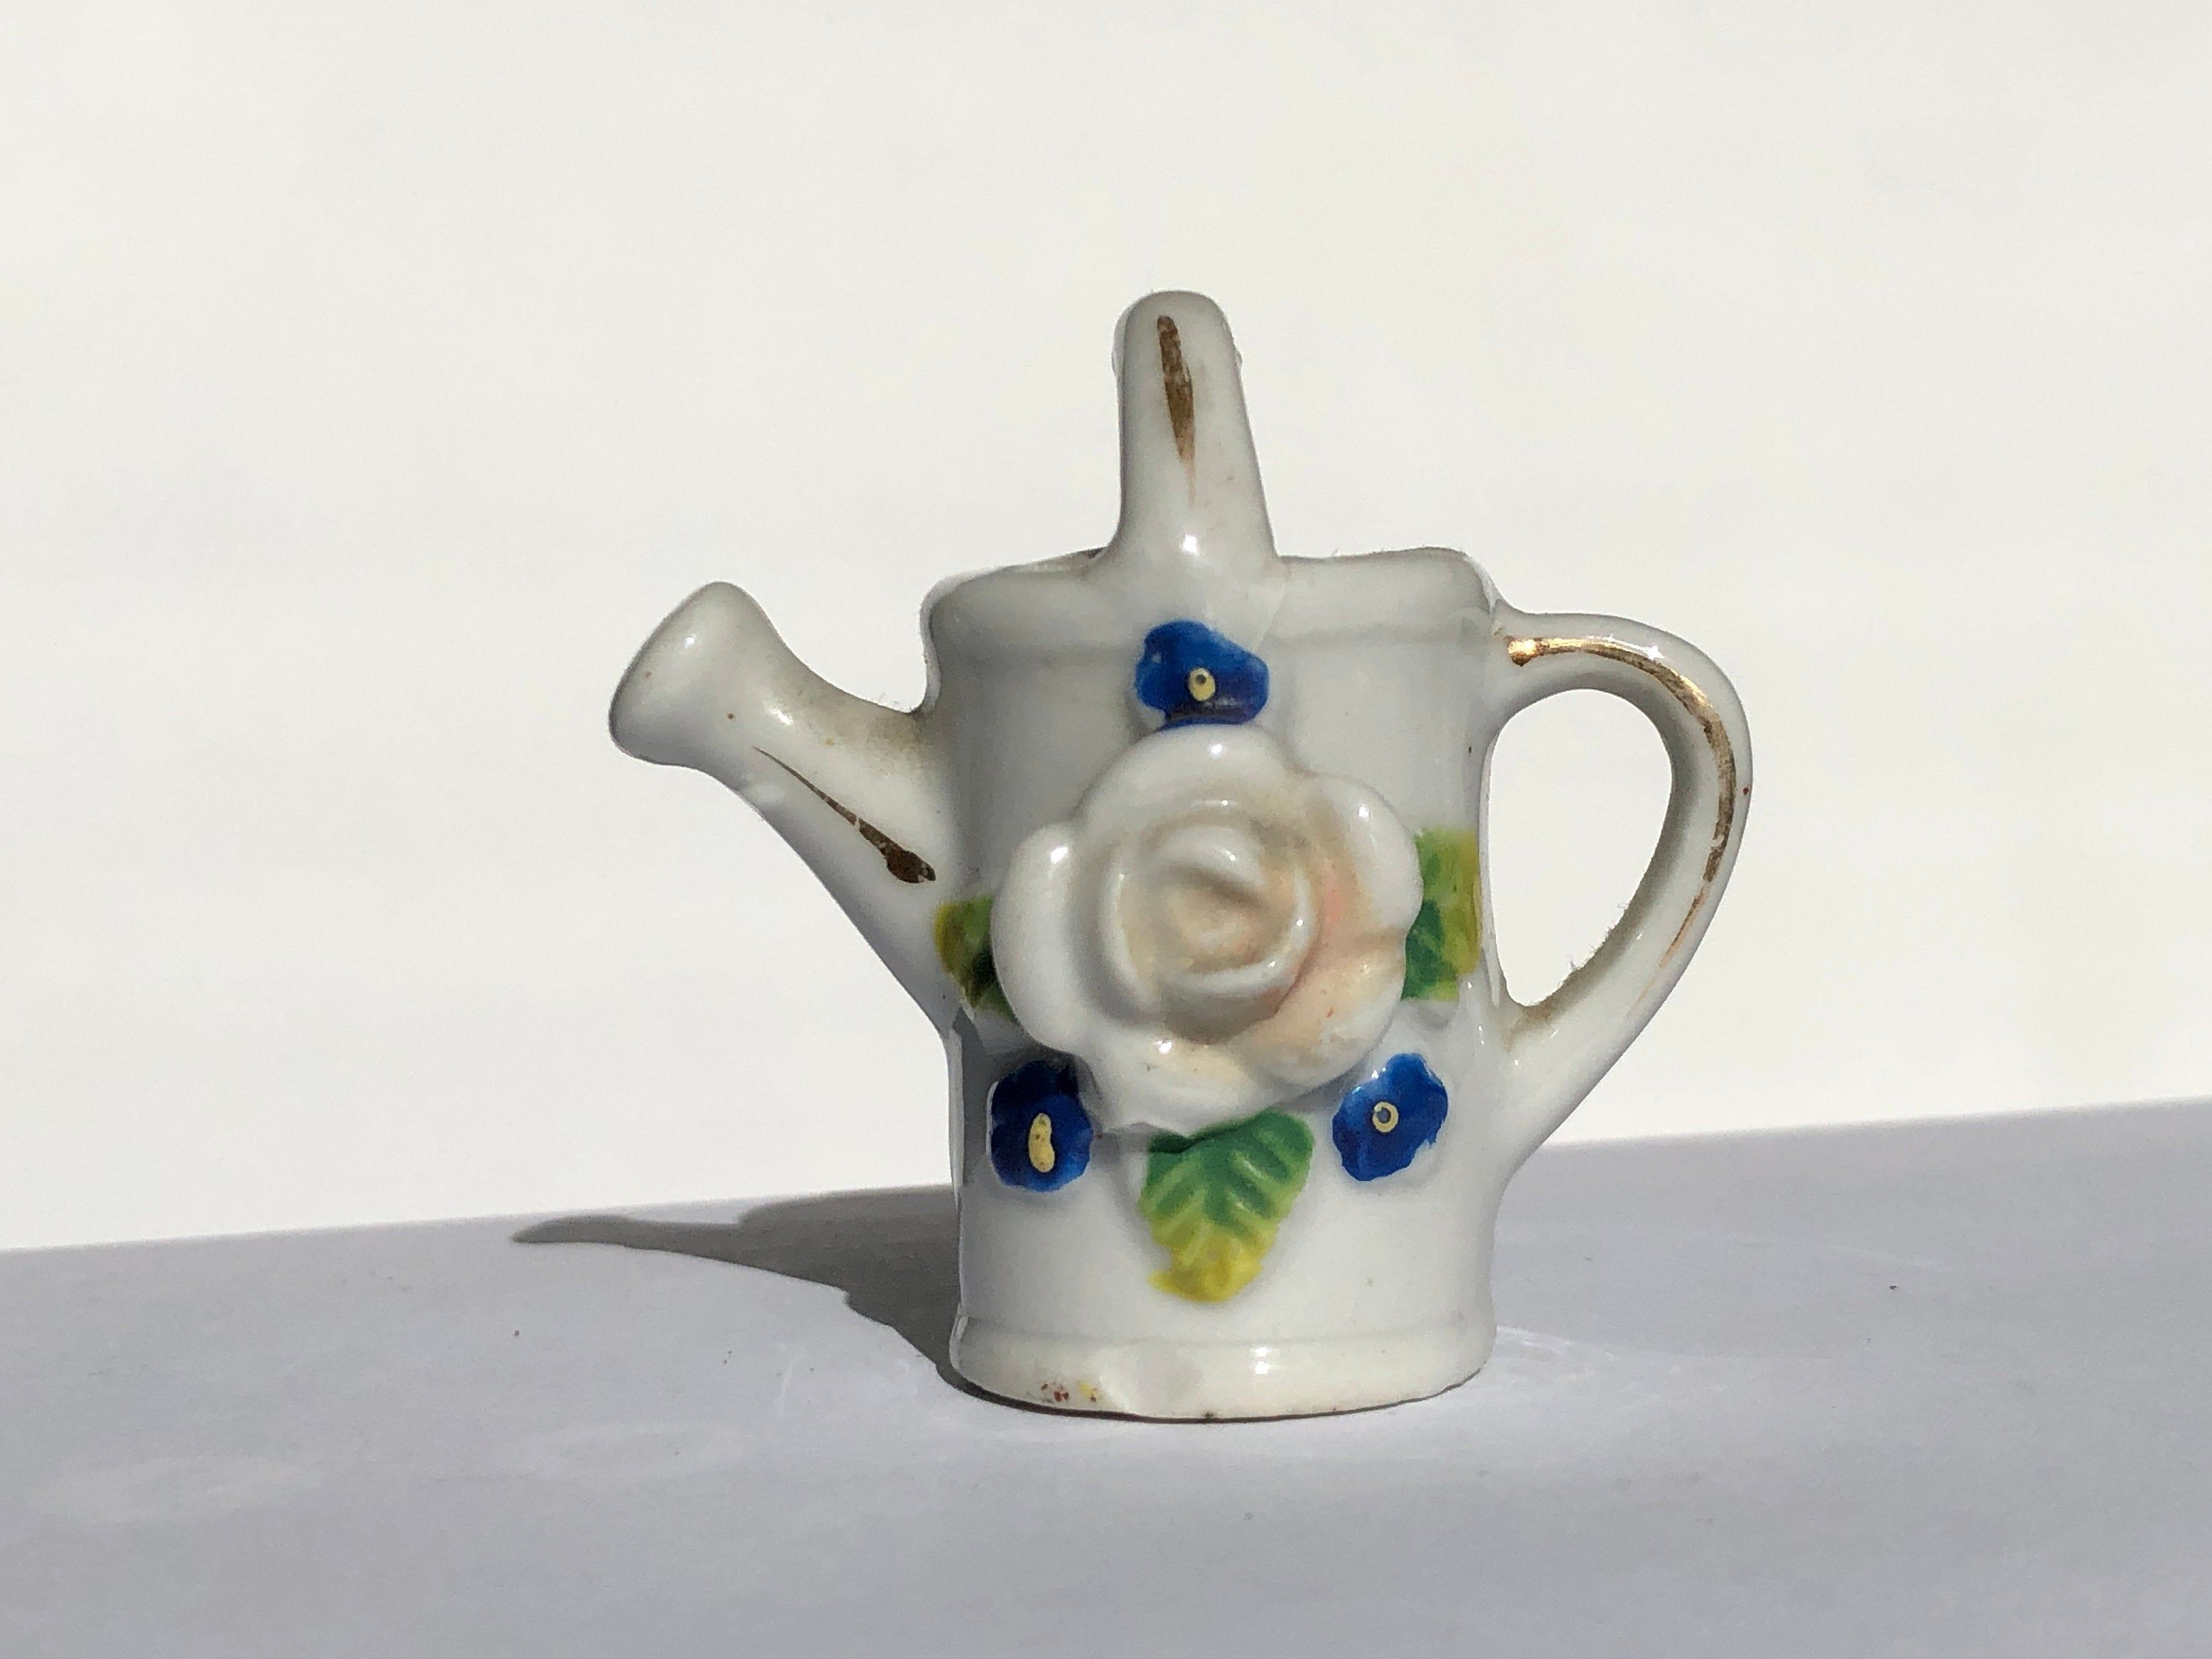 Vintage Ceramic Made in Occupied Japan Floral Miniature Watering Can Garden Theme Porcelain Trinket Knick Knack Collectible Post WWII #knickknack Vintage Ceramic Made in Occupied Japan Floral Miniature Watering Can Garden Theme Porcelain Trinket Knick Knack Collectible Post WWII #knickknack